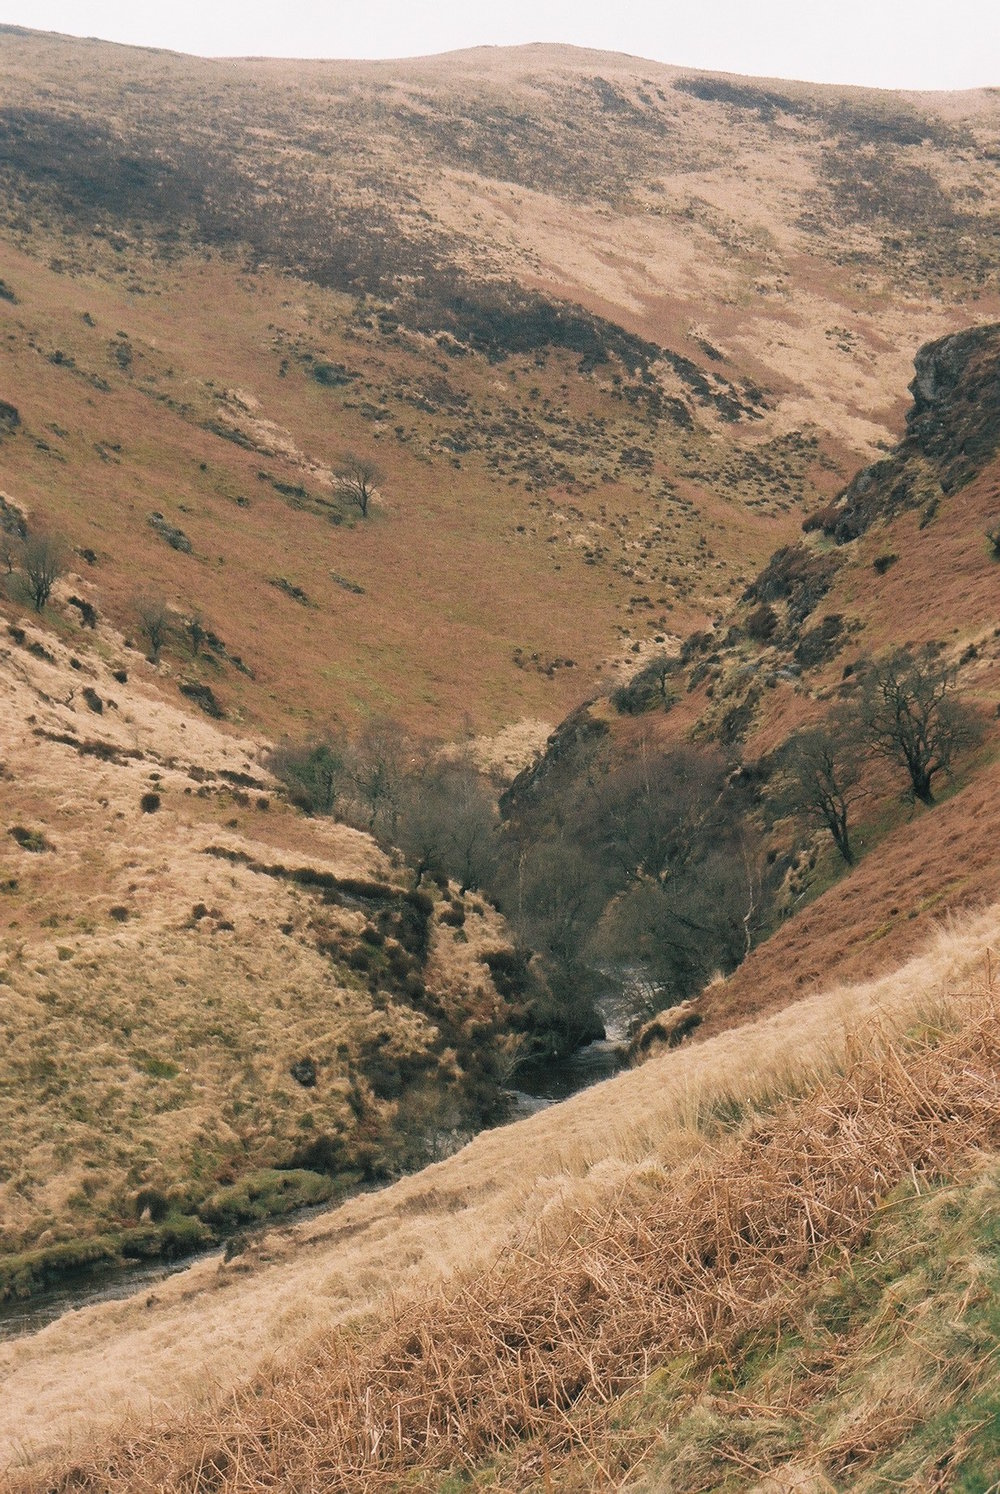 wales, bicycle touring apocalypse, travel, bikepacking, mountains, bikepacking blog, bicycle touring, photography, photography blog, canon, canon ae-1, camera, film is not dead, film photography, 35mm, jack macgowan, photographer, landscape, landscape photography, cycling, cycling blog